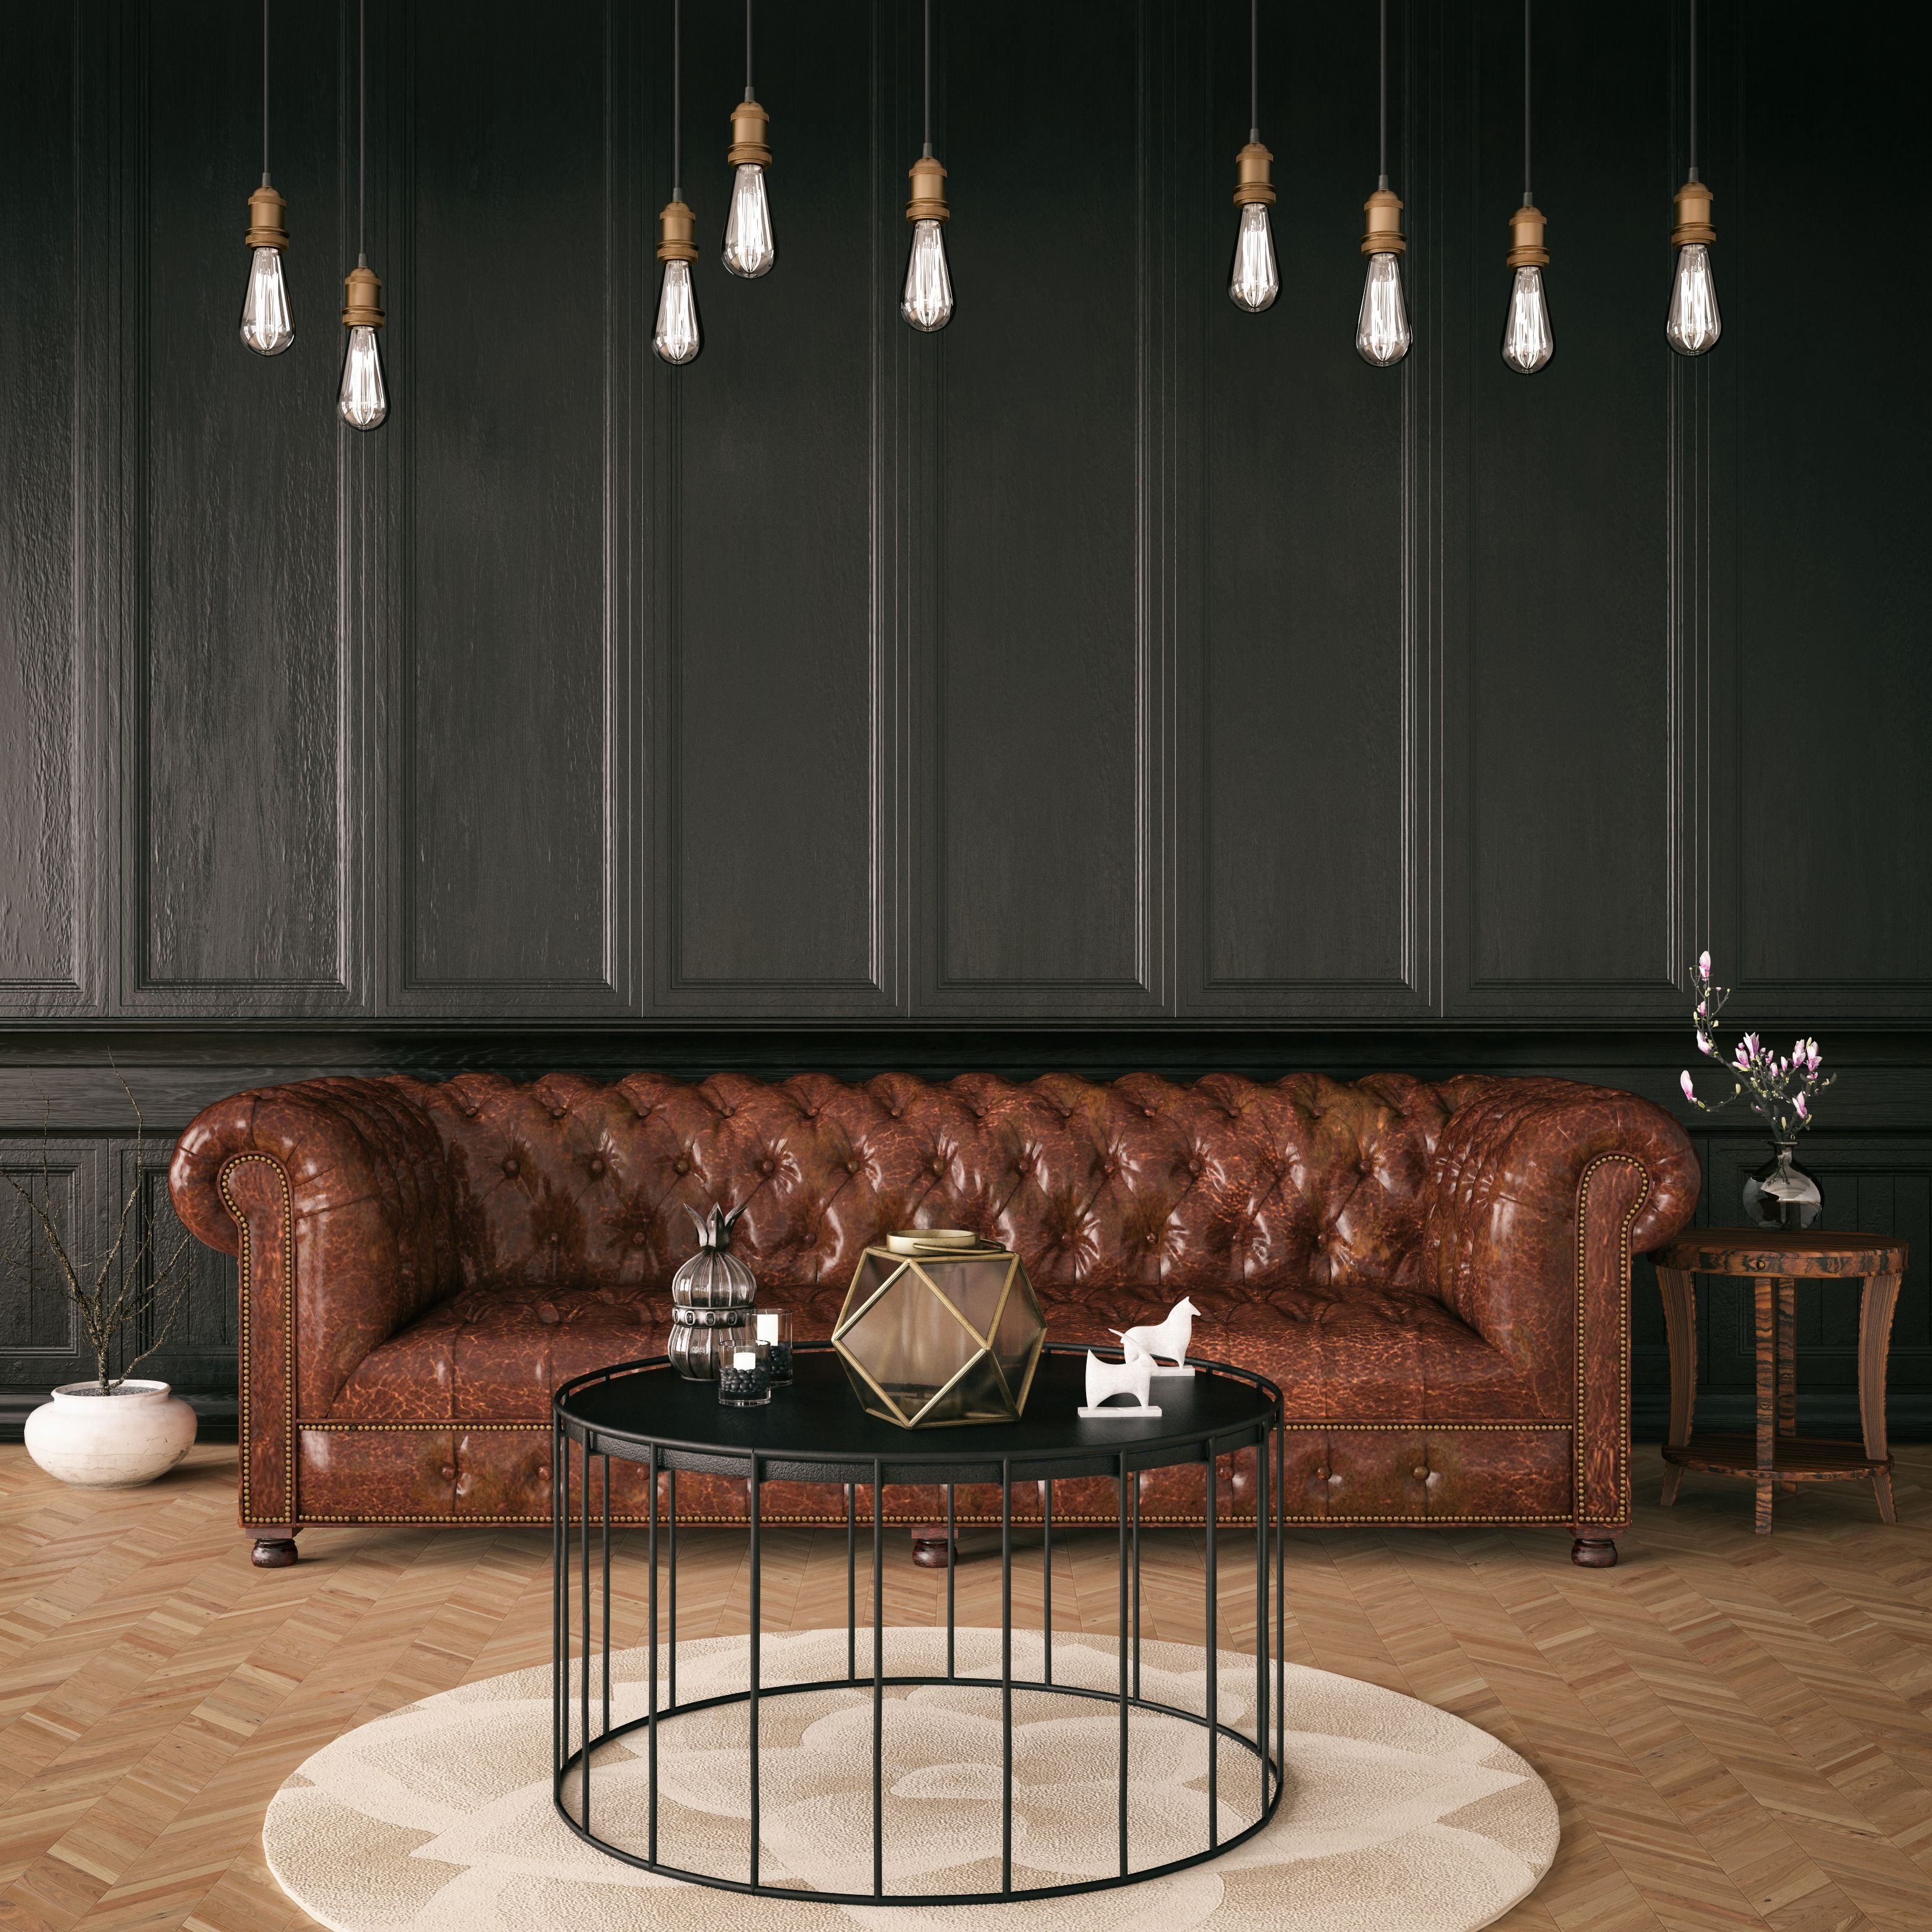 Best Decorating With Black Home Decor This Month